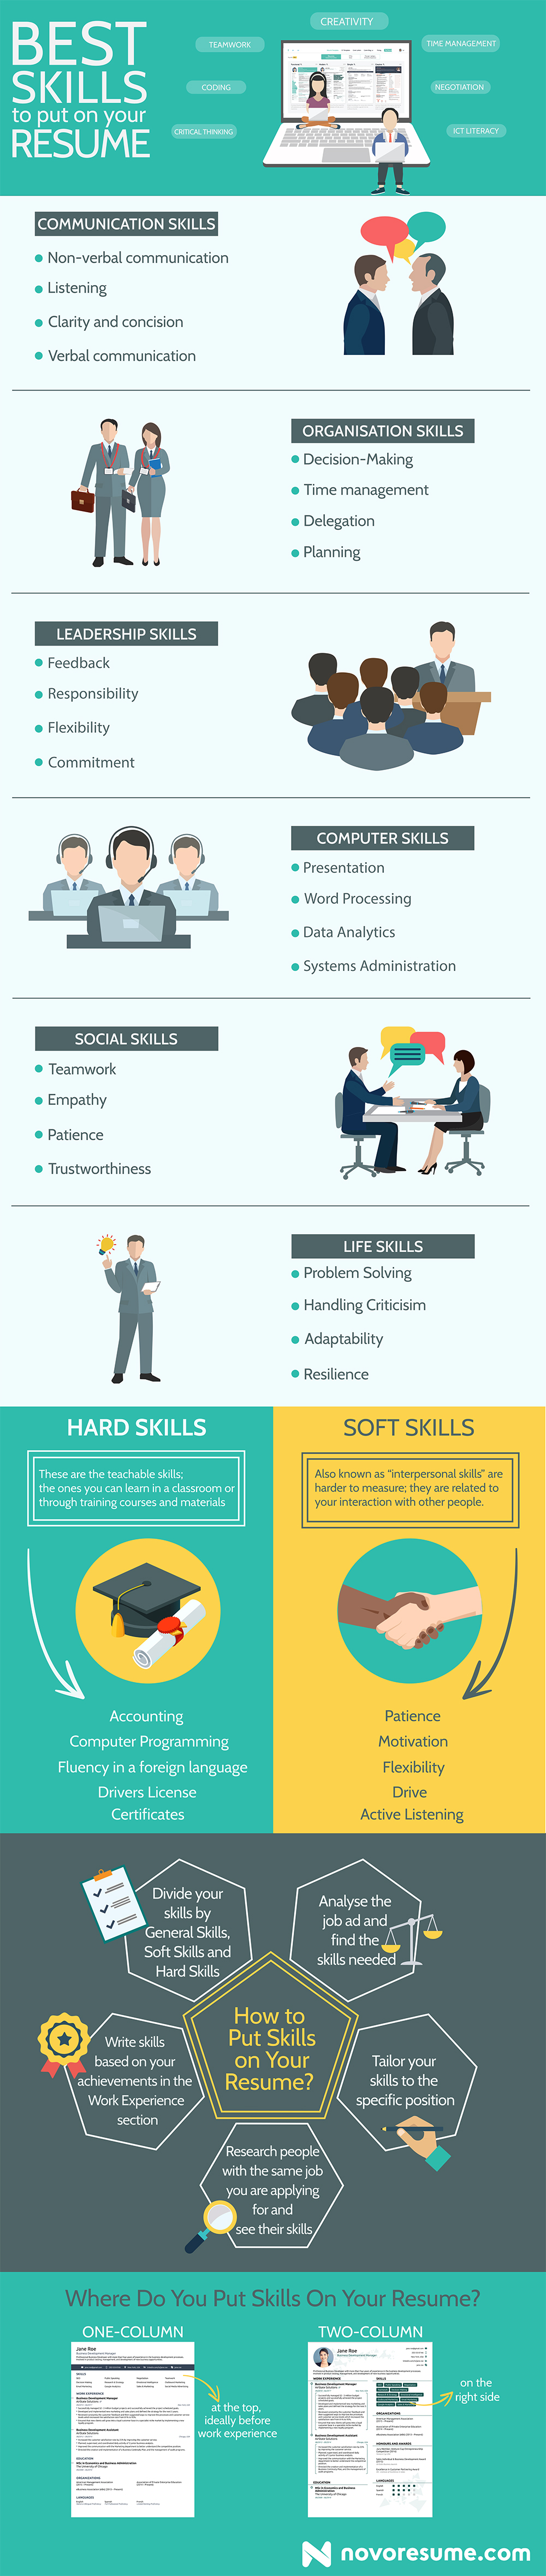 these are the best skills to include in your resume